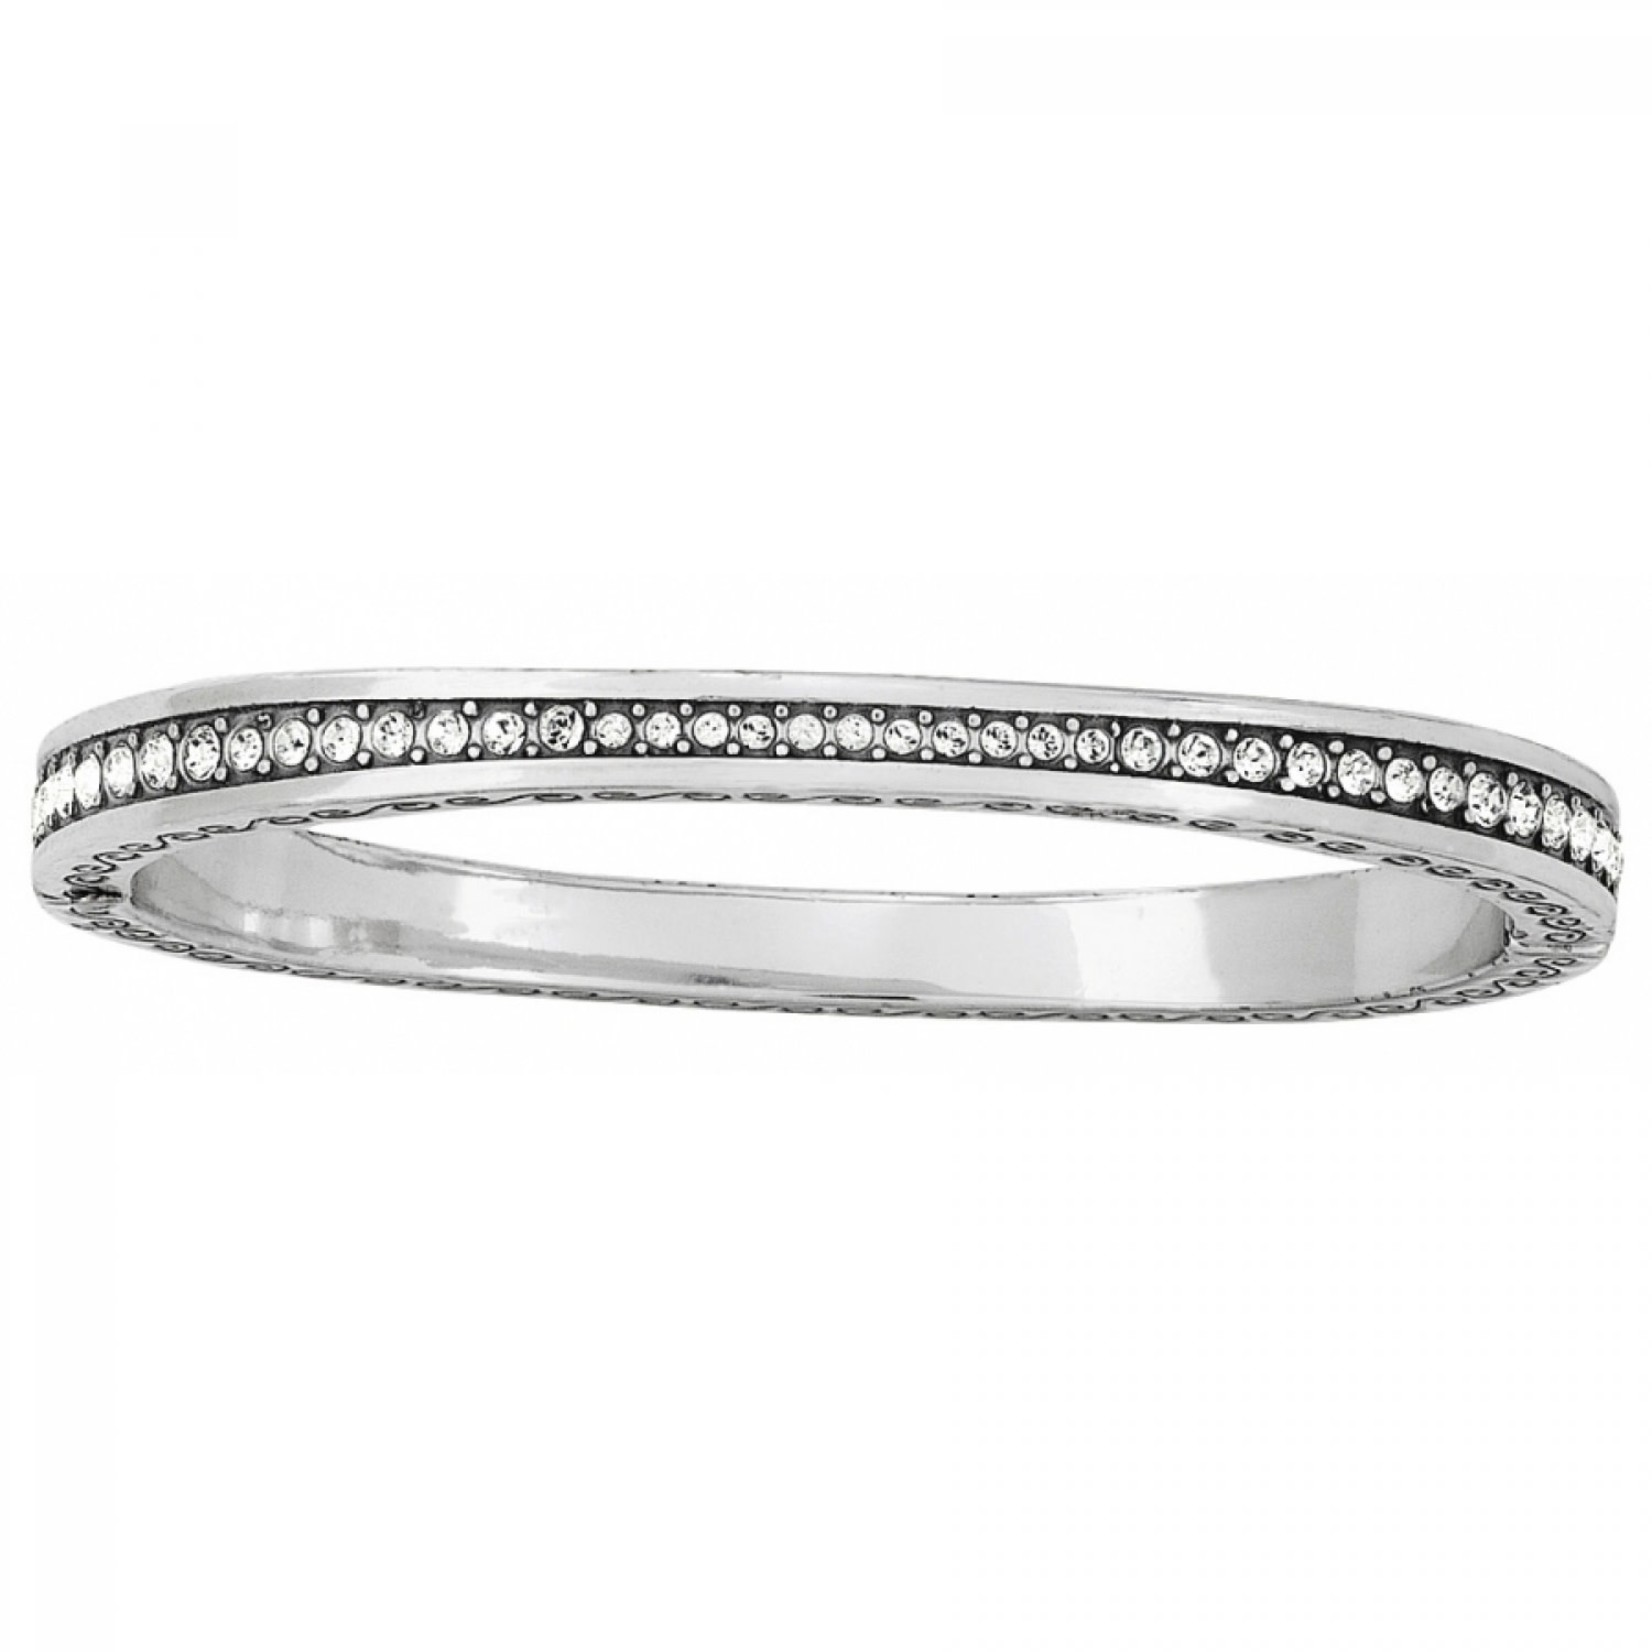 Brighton J37922 Secret of Love Hinged Bangle